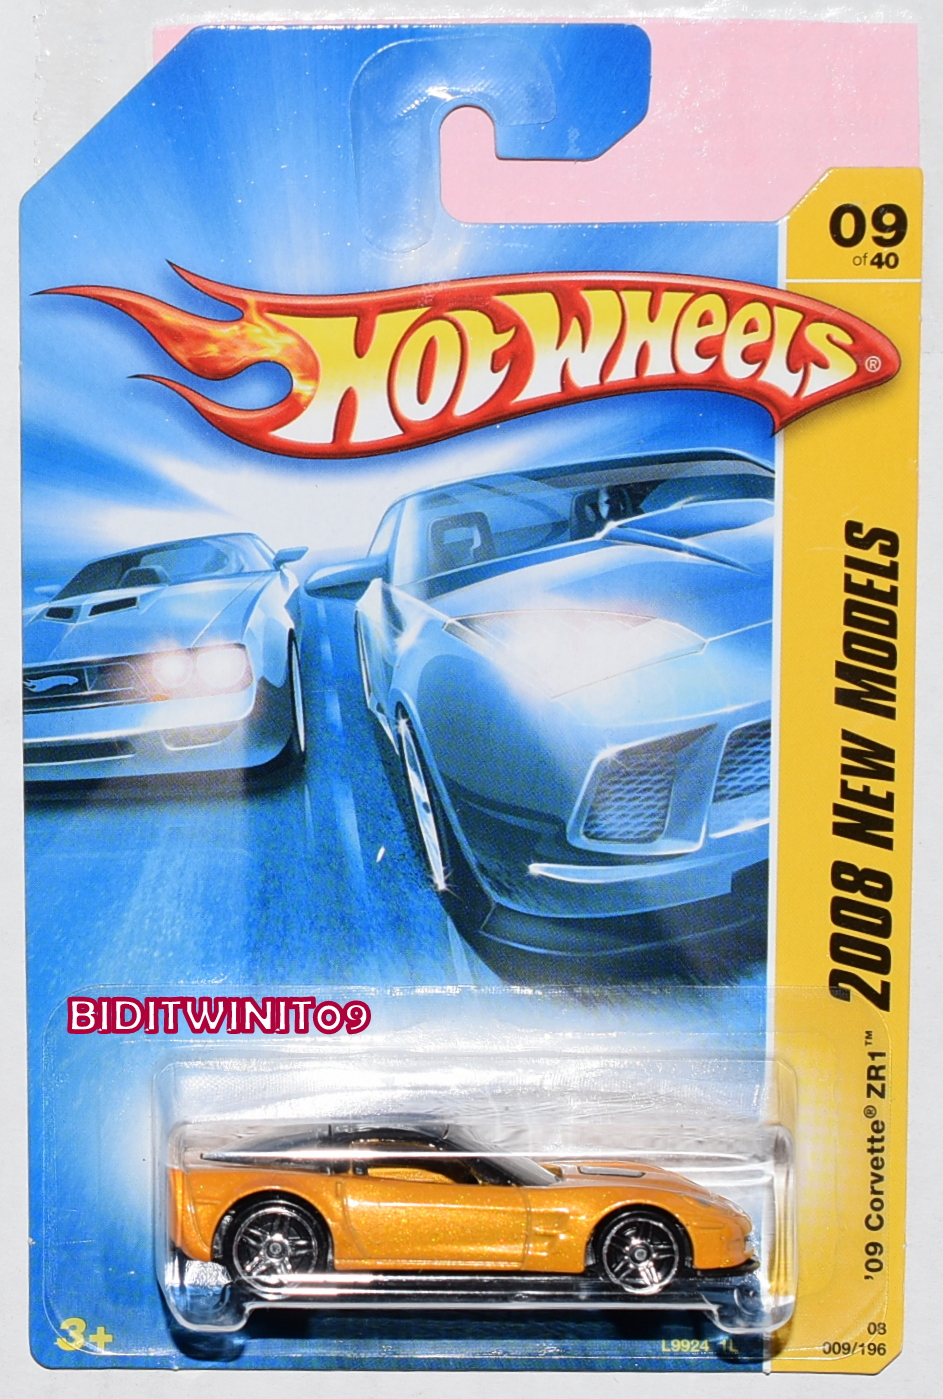 HOT WHEELS 2008 NEW MODELS '09 CORVETTE ZR1 #09/40 YELLOW E+